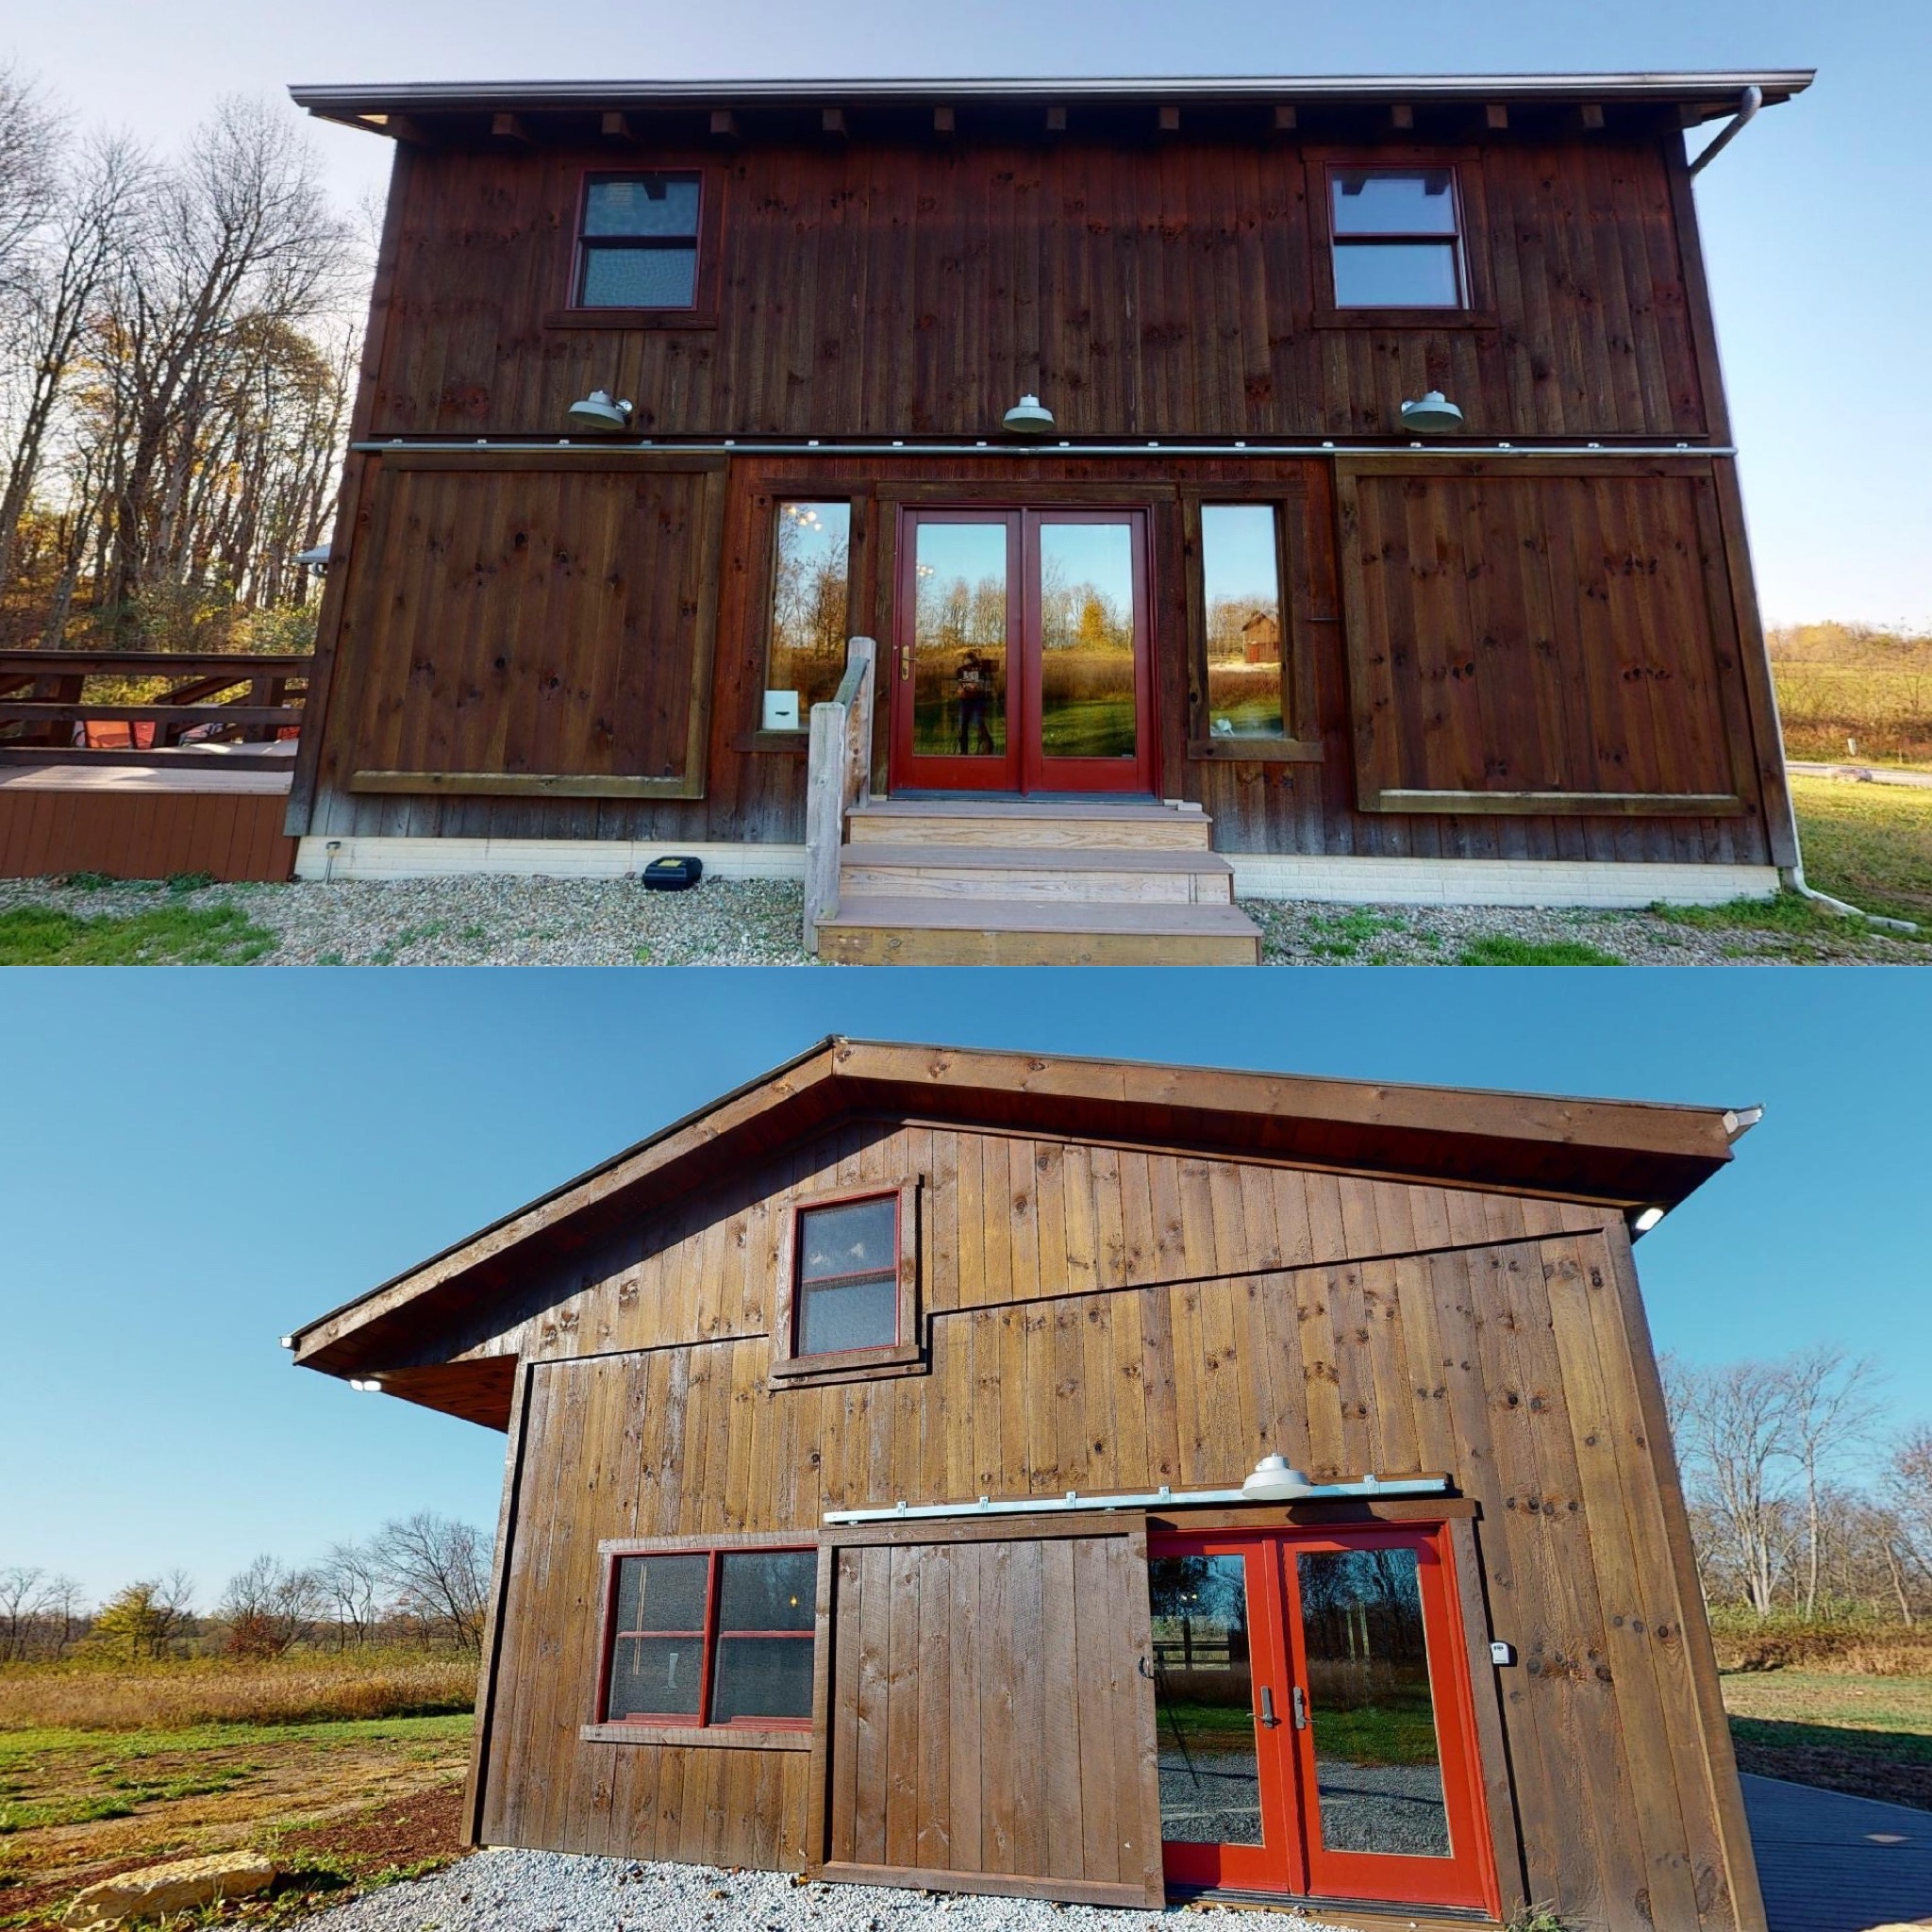 The Barn  Stable at Pumpkin Ridge Resort - Boasting TWO separate cabins renting as one reservation. 95 acres of land, 7 miles of hiking trails, and so much more luxuriousness you